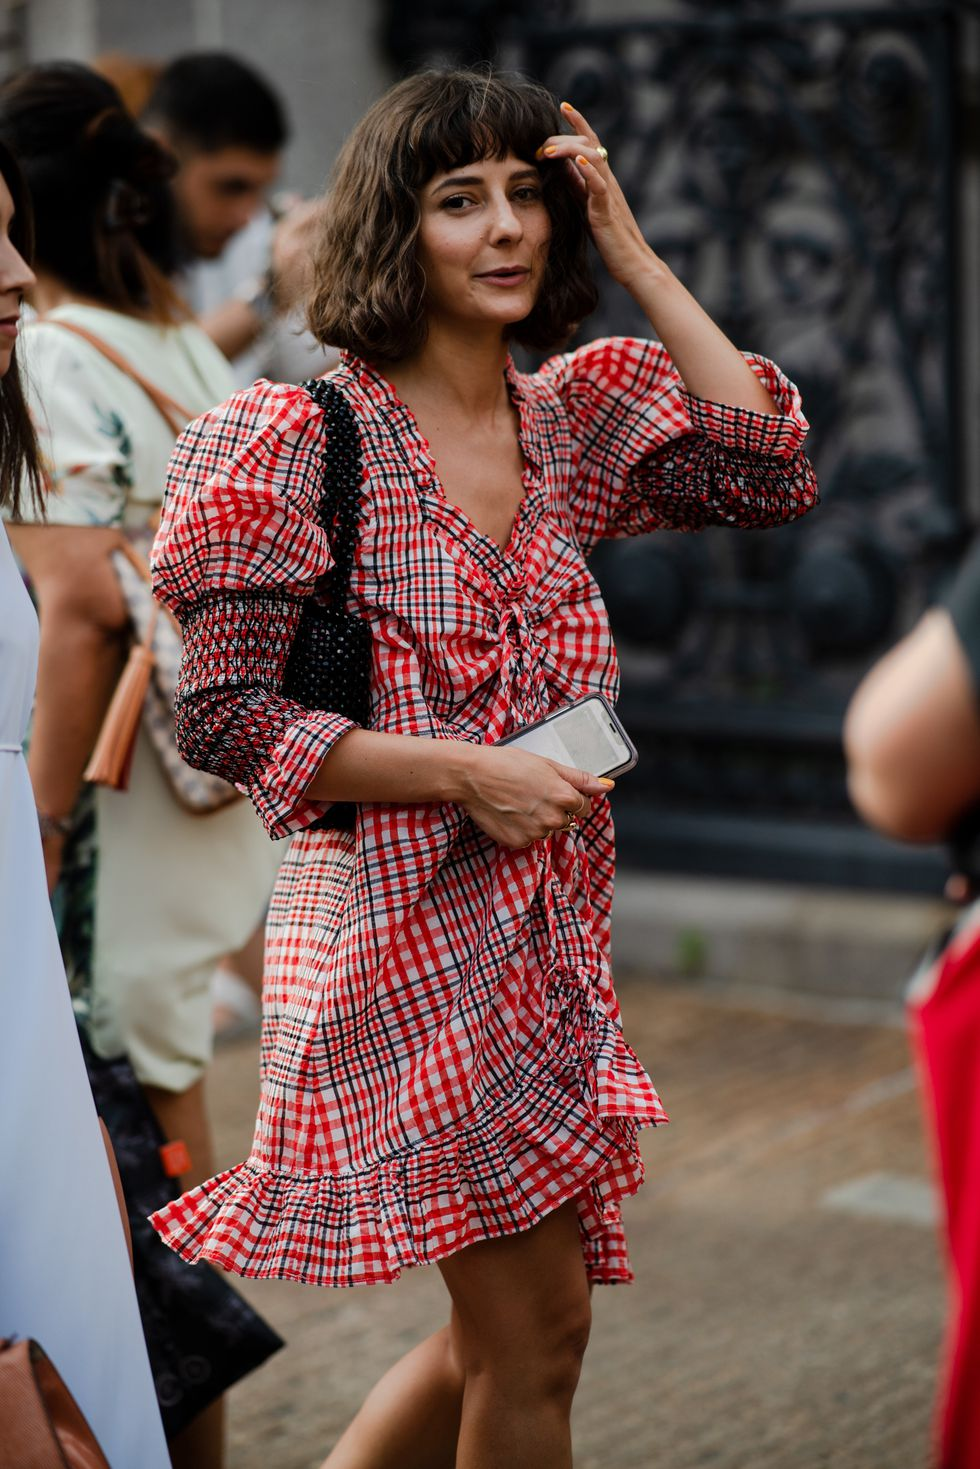 nyfw-ss19-day-1-tyler-joe-027-1536350657.jpg